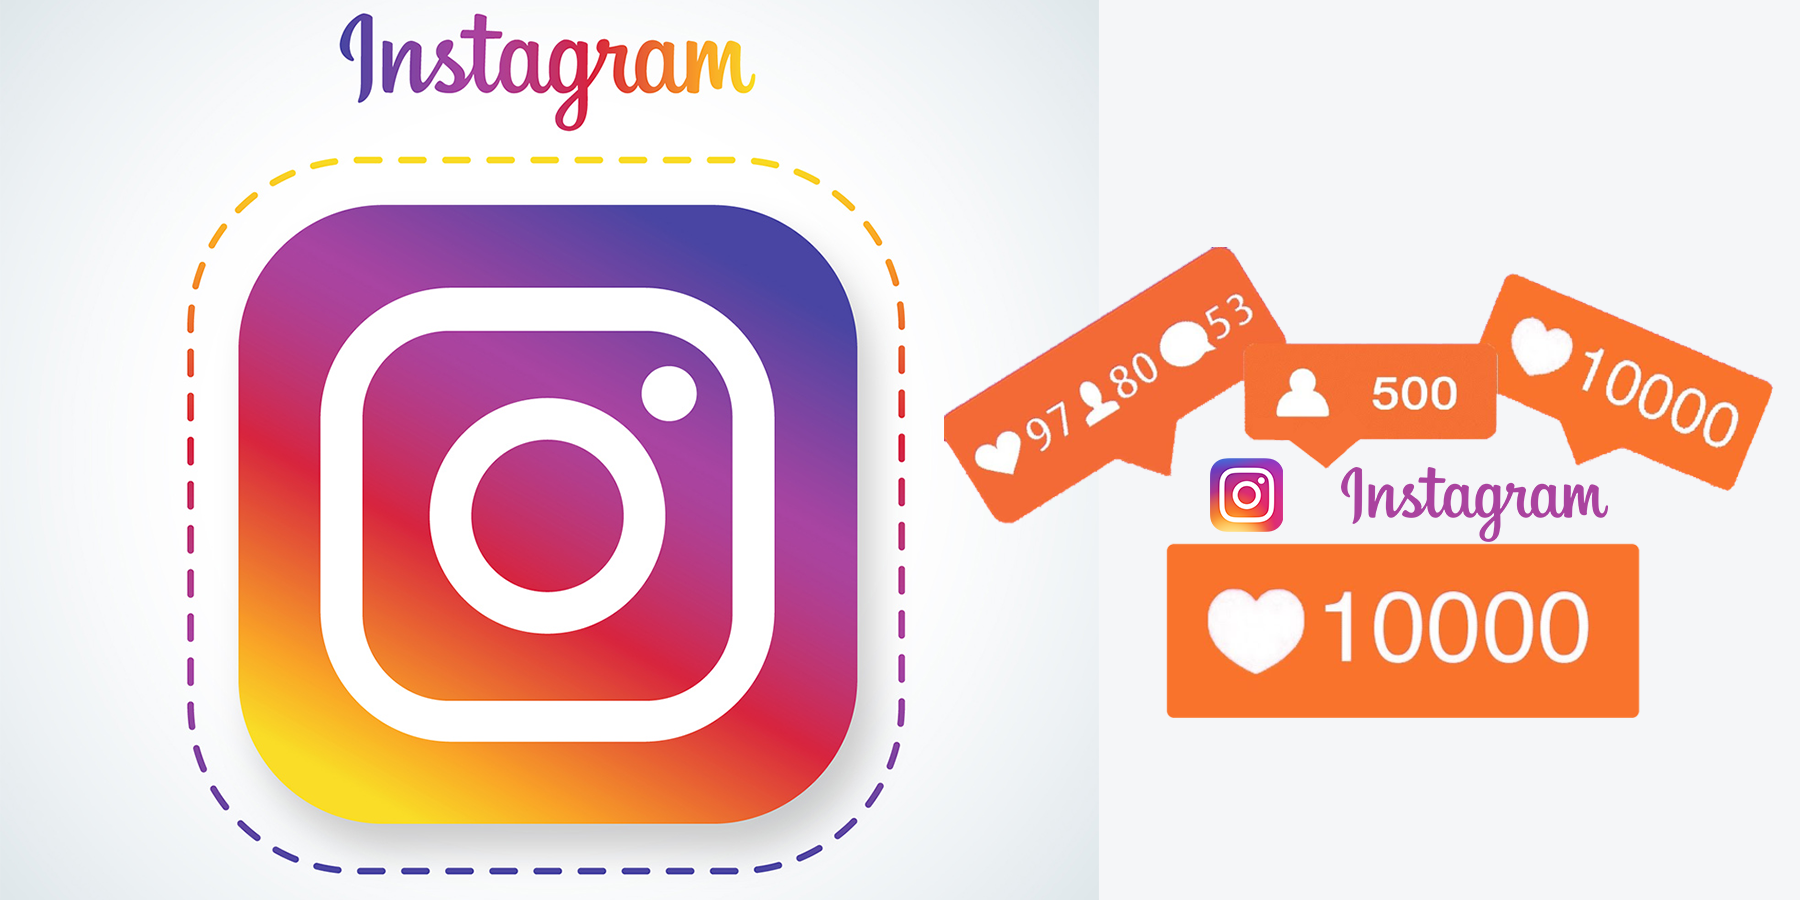 Why should youbuy Instagram likes for that enterprise?